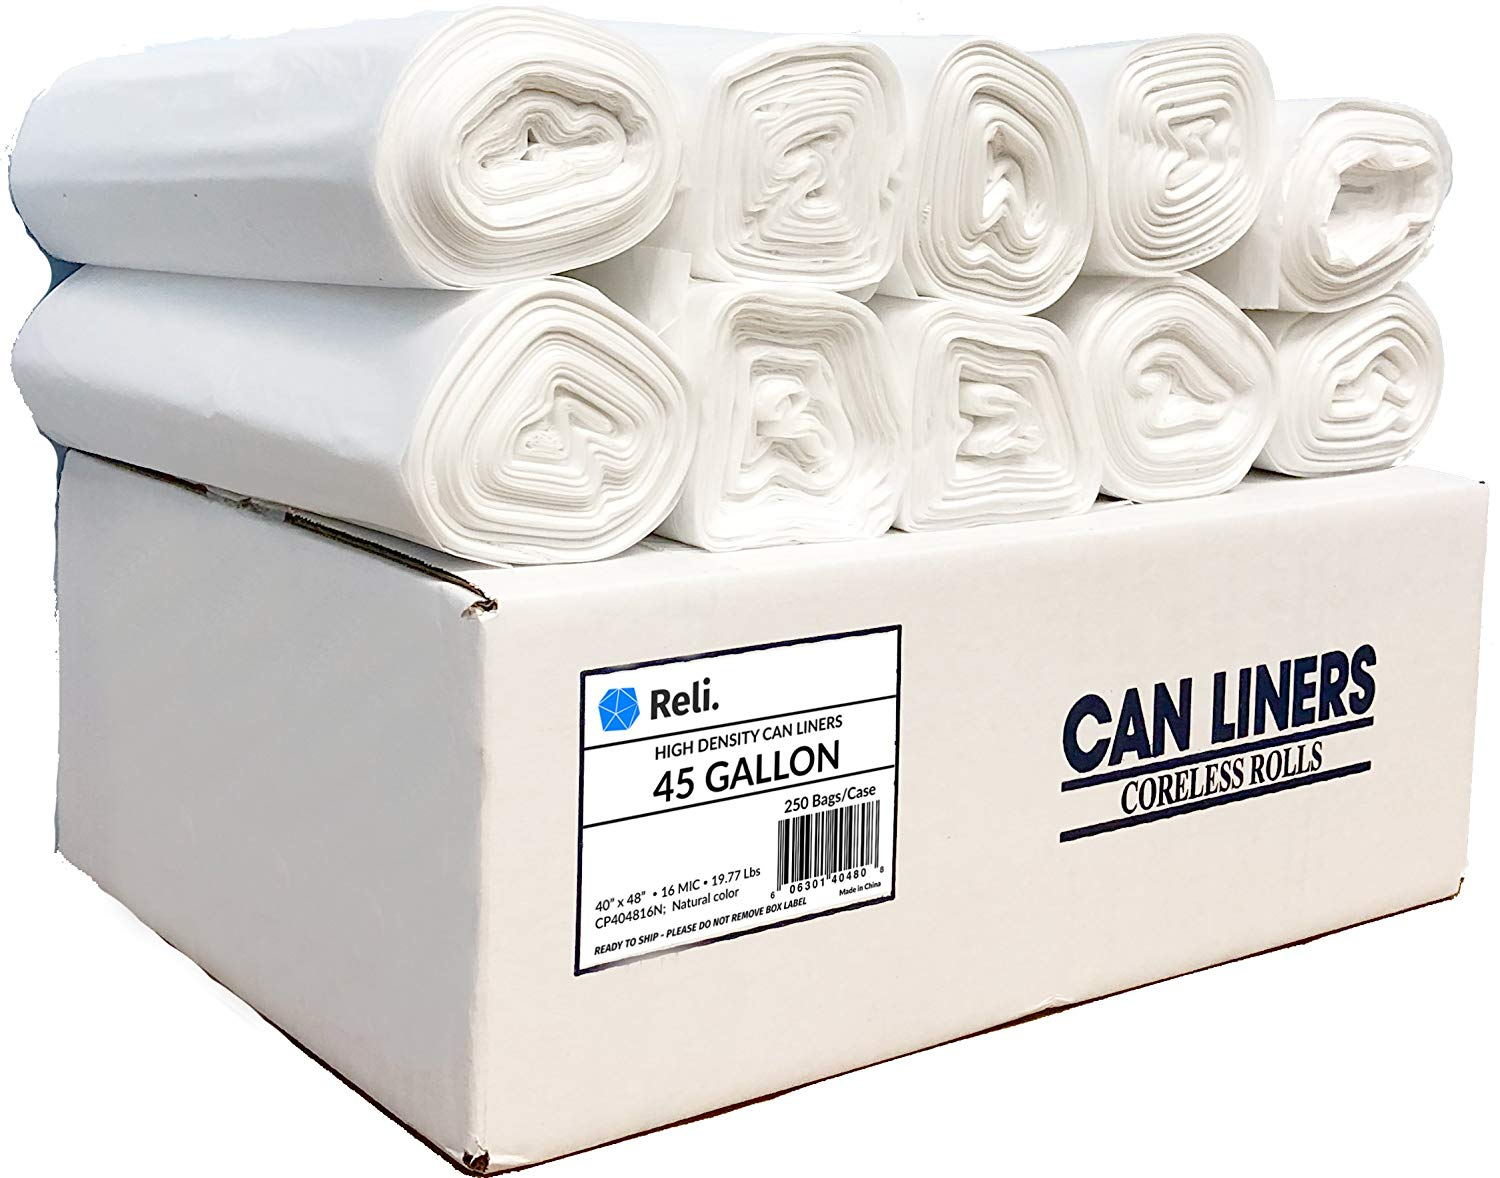 Reli. Trash Bags, 45 Gallon (Wholesale 250 count) - Star Seal High Density Rolls (Clear) - Can Liners, Garbage Bags with 40 Gallon (40 Gal) to 45 Gallon (45 Gal) Capacity